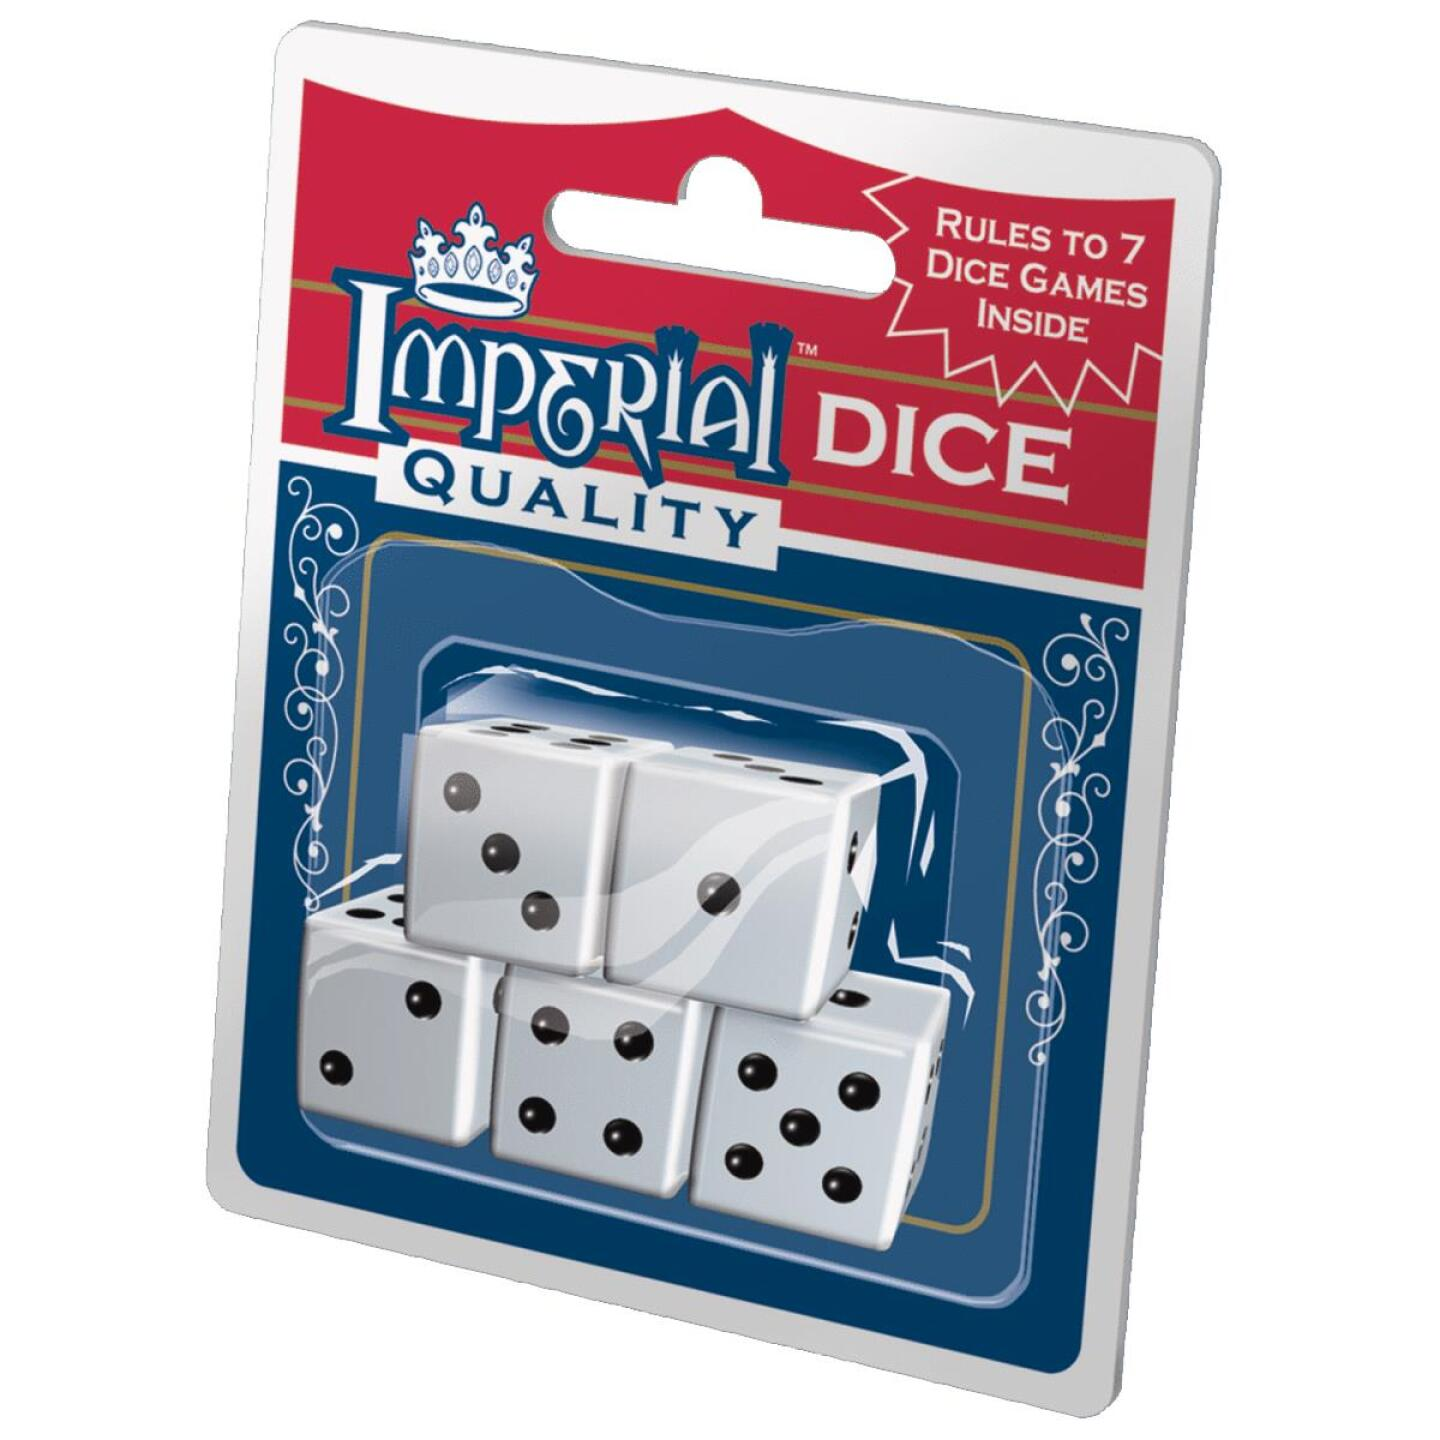 Imperial Quality White Dice (5-Pack) Image 1